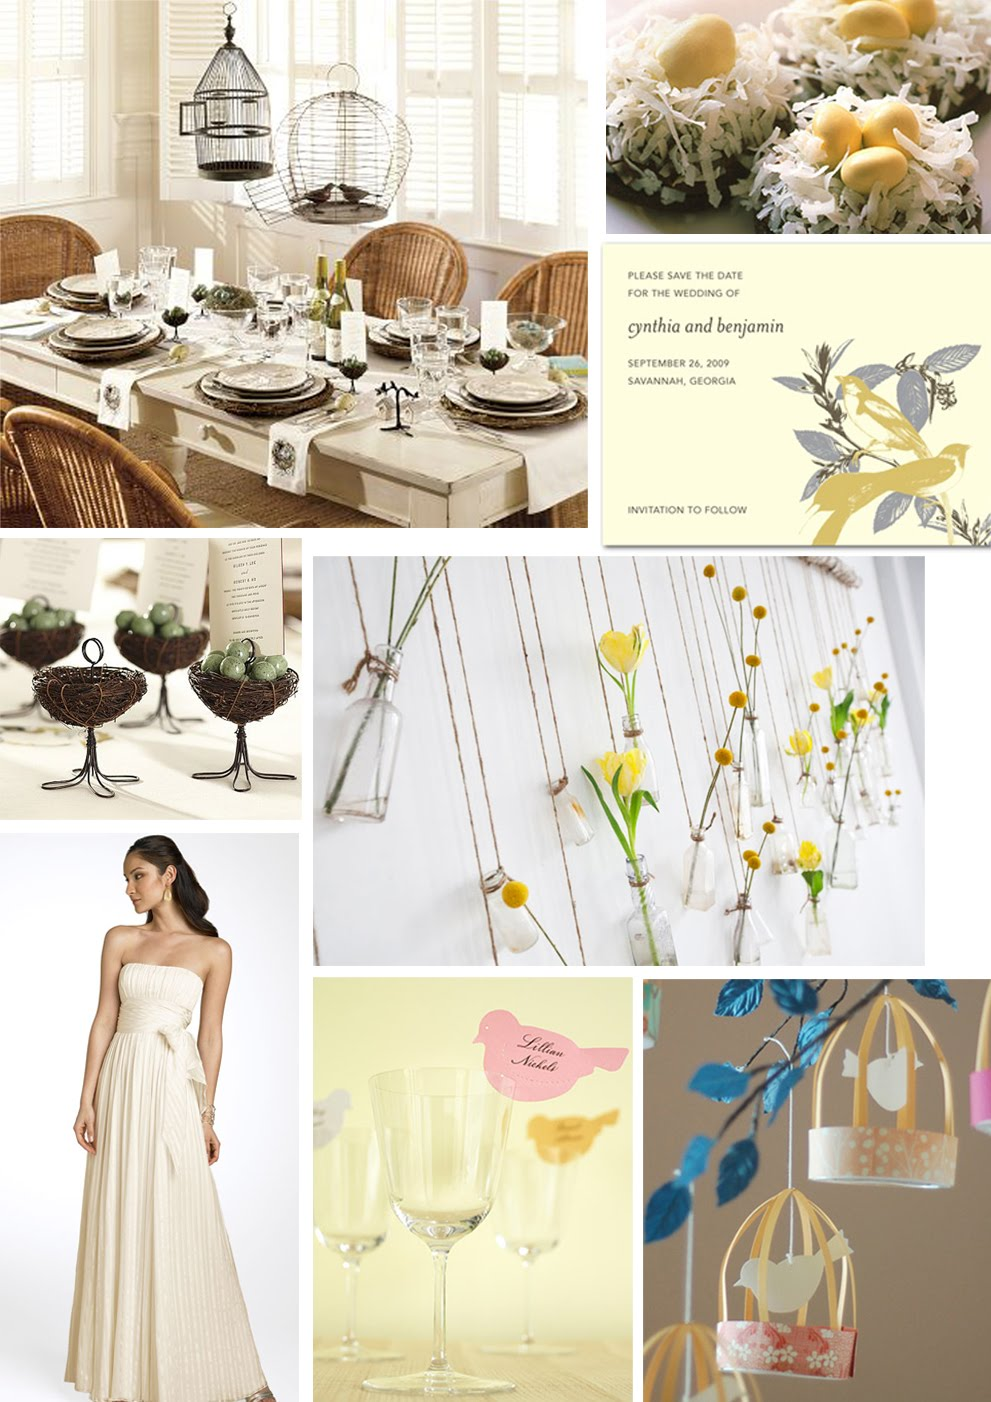 The Artful Bride Wedding Blog: Love Bird Themed Wedding Inspiration